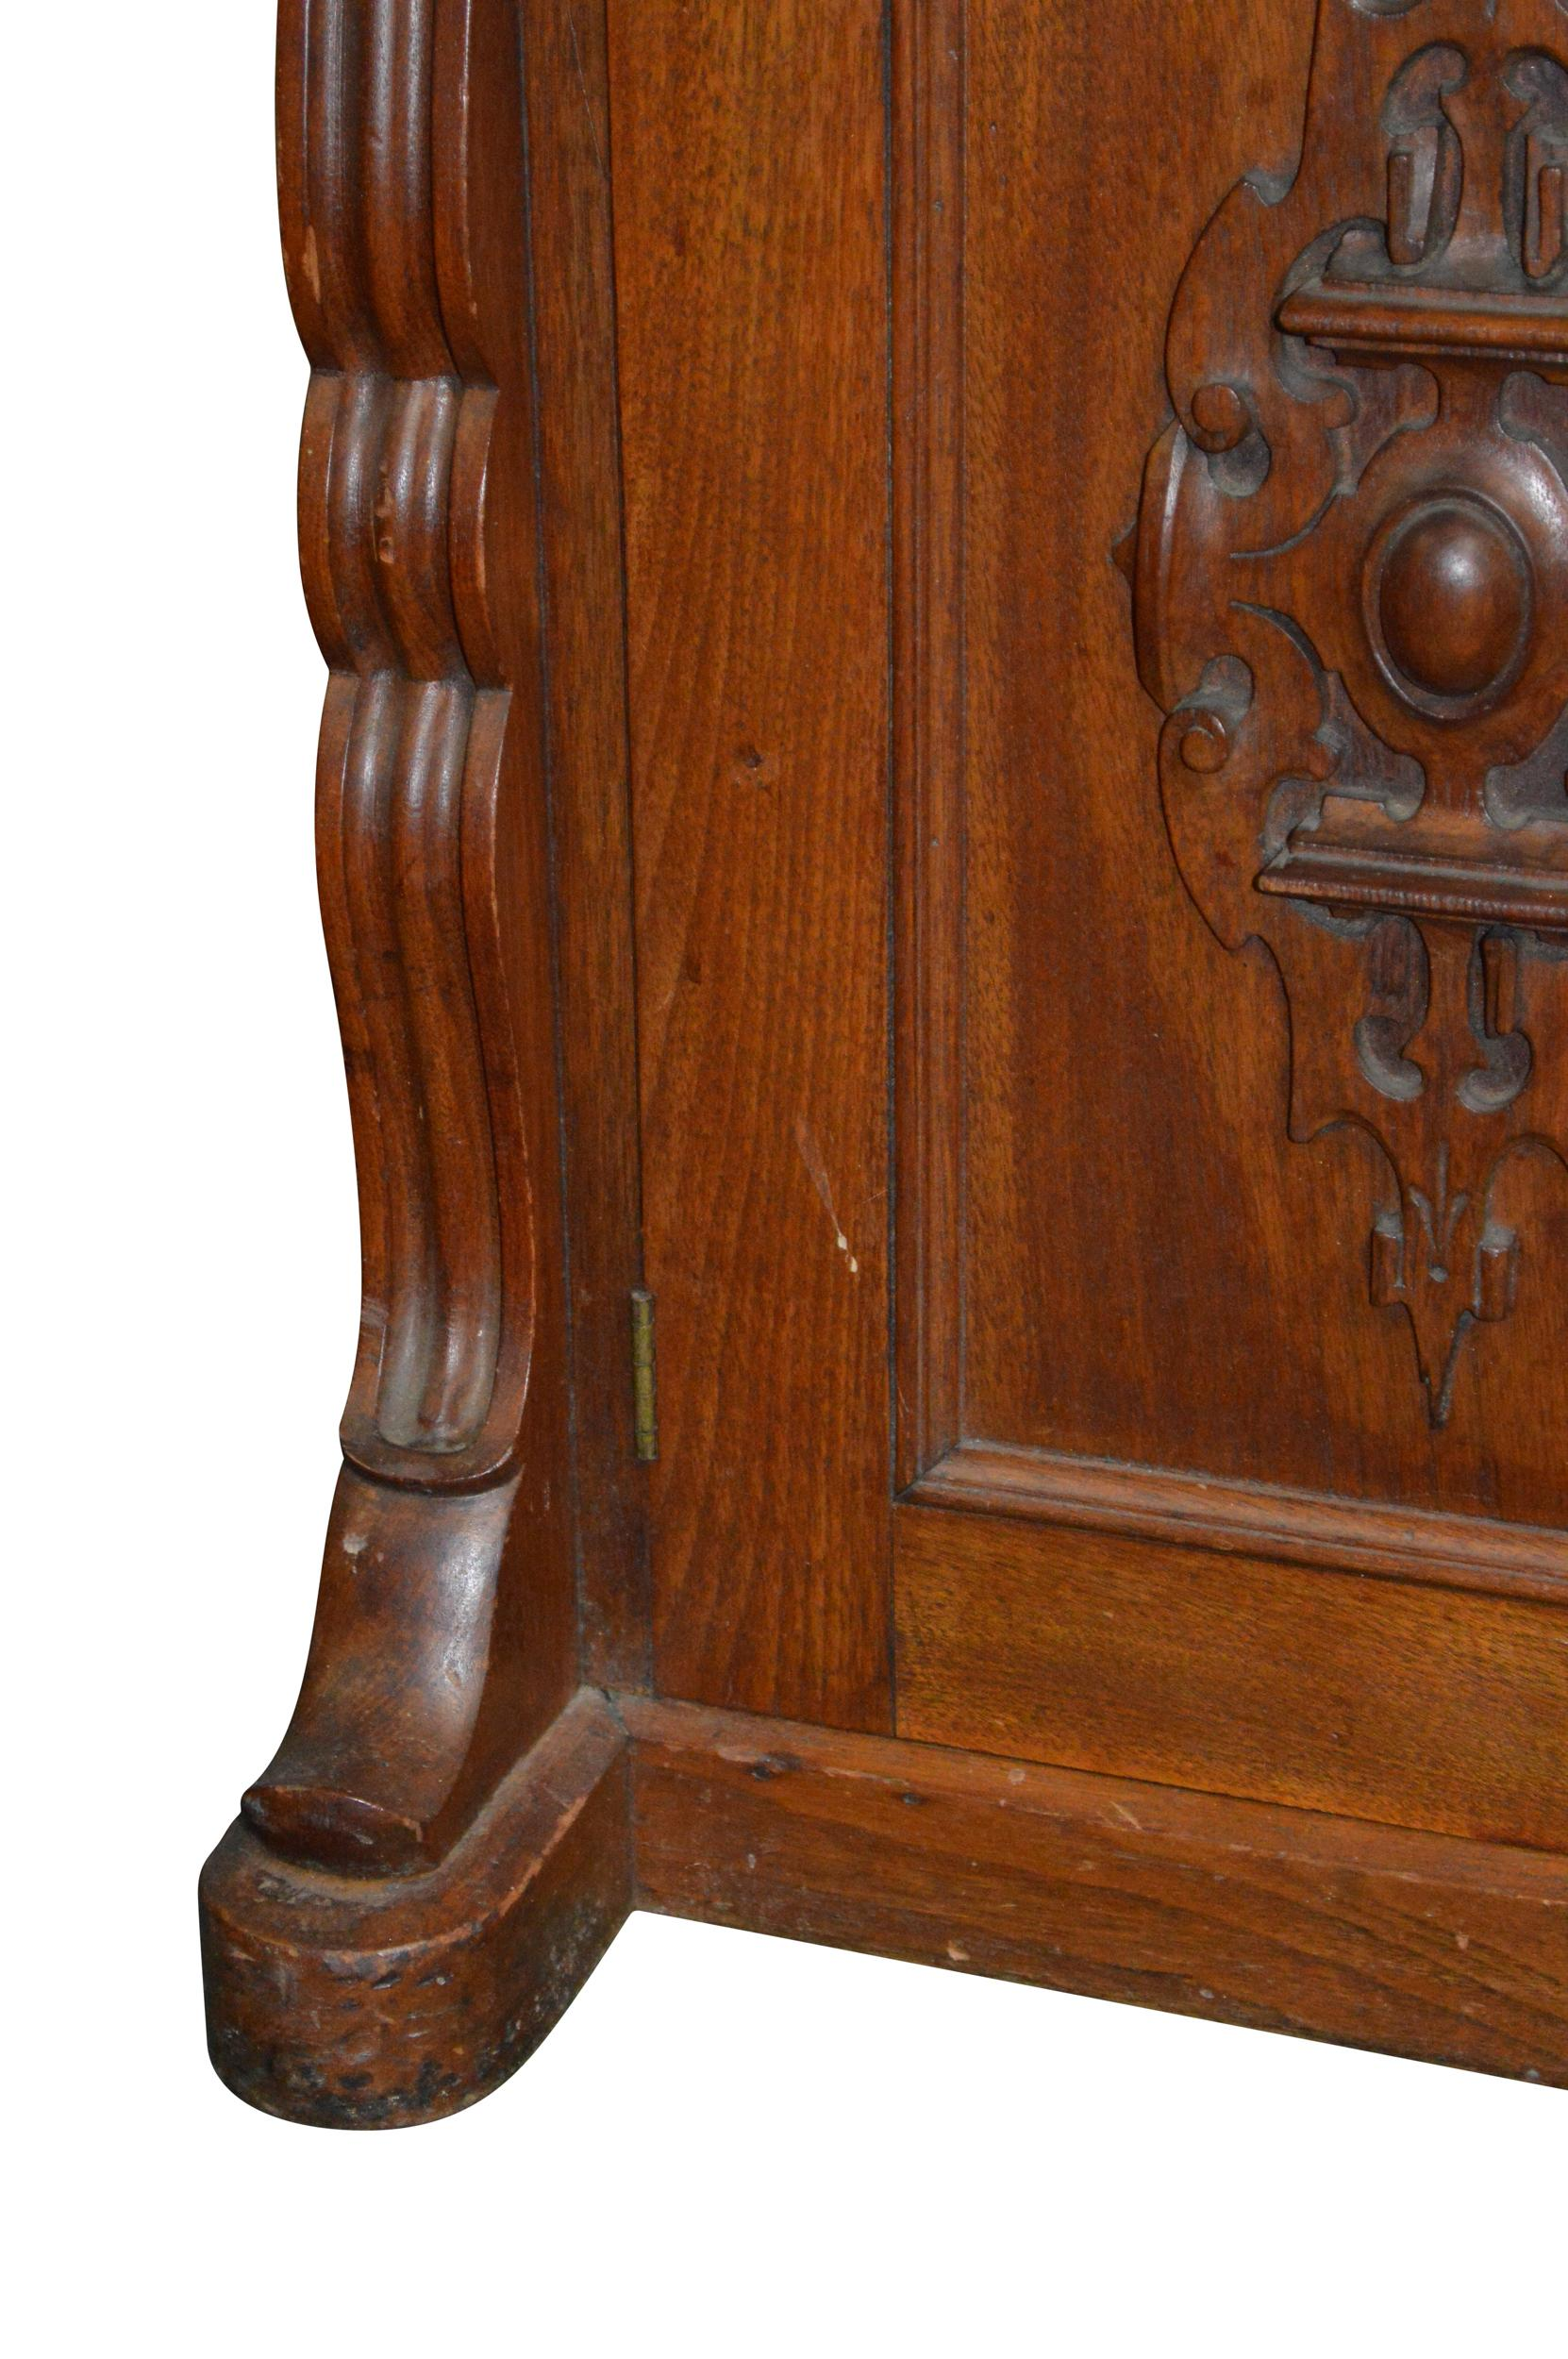 Antique Victorian Walnut Slant Top Secretary Desk from